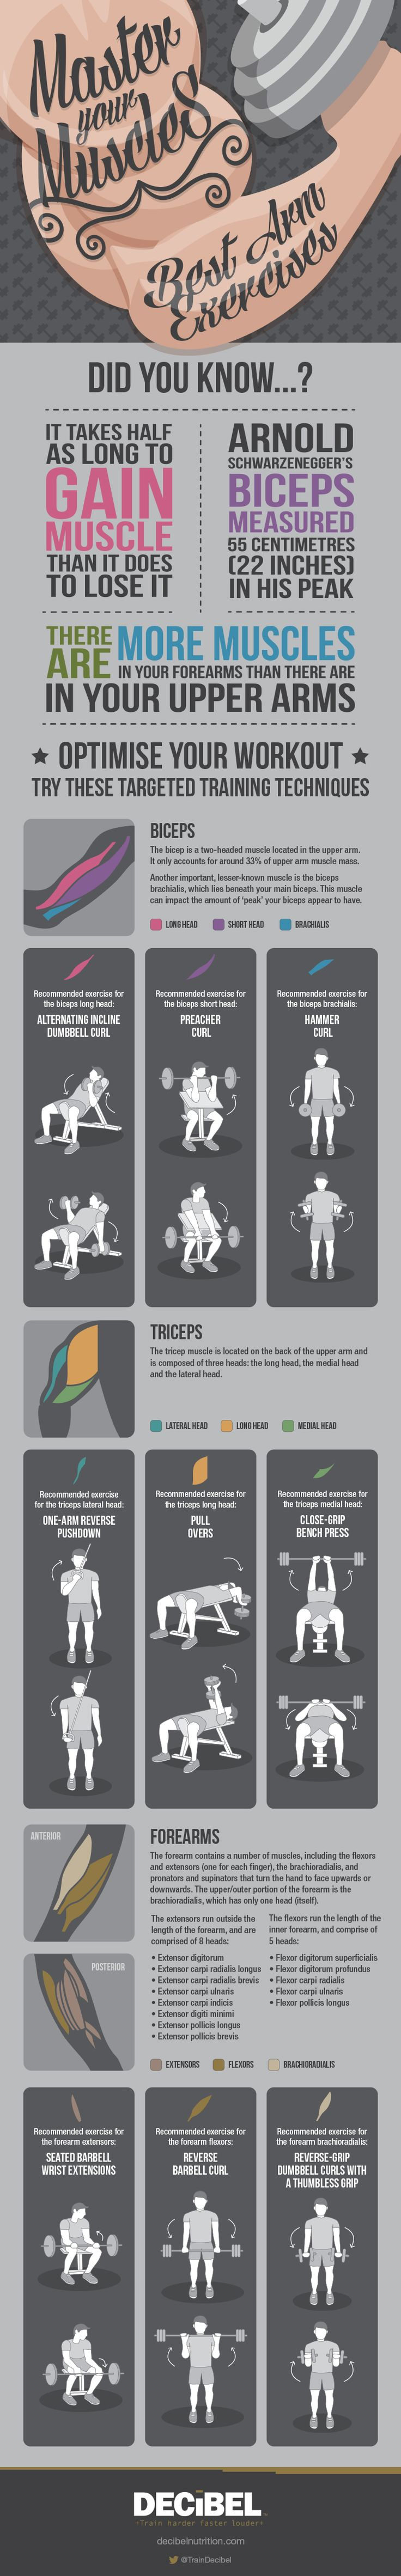 A while ago, we created an infographic detailing the best exercises for each muscle group in your body. Since then we've received numerous requests for more detailed information about how to best target individual muscles, so we are starting a series of detailed guides for each of the muscle groups (you're welcome!). In this guide …